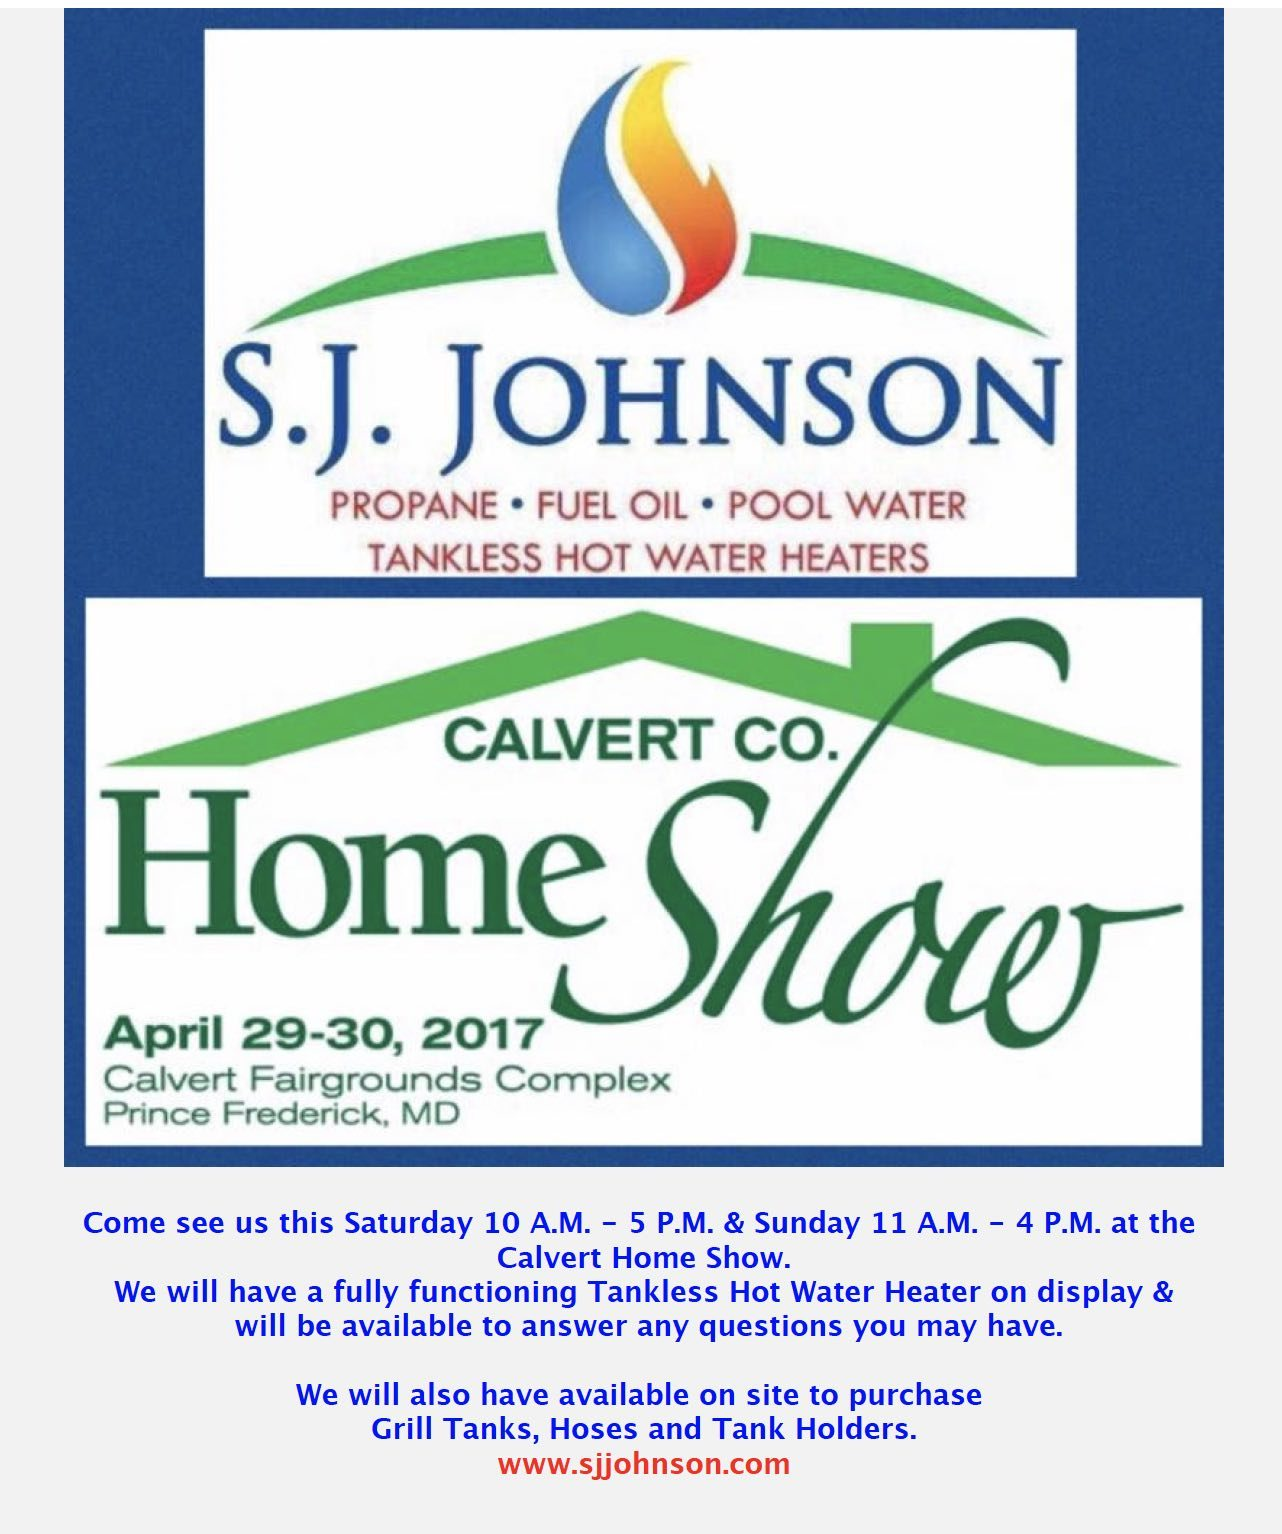 propane company to have a booth at the home show